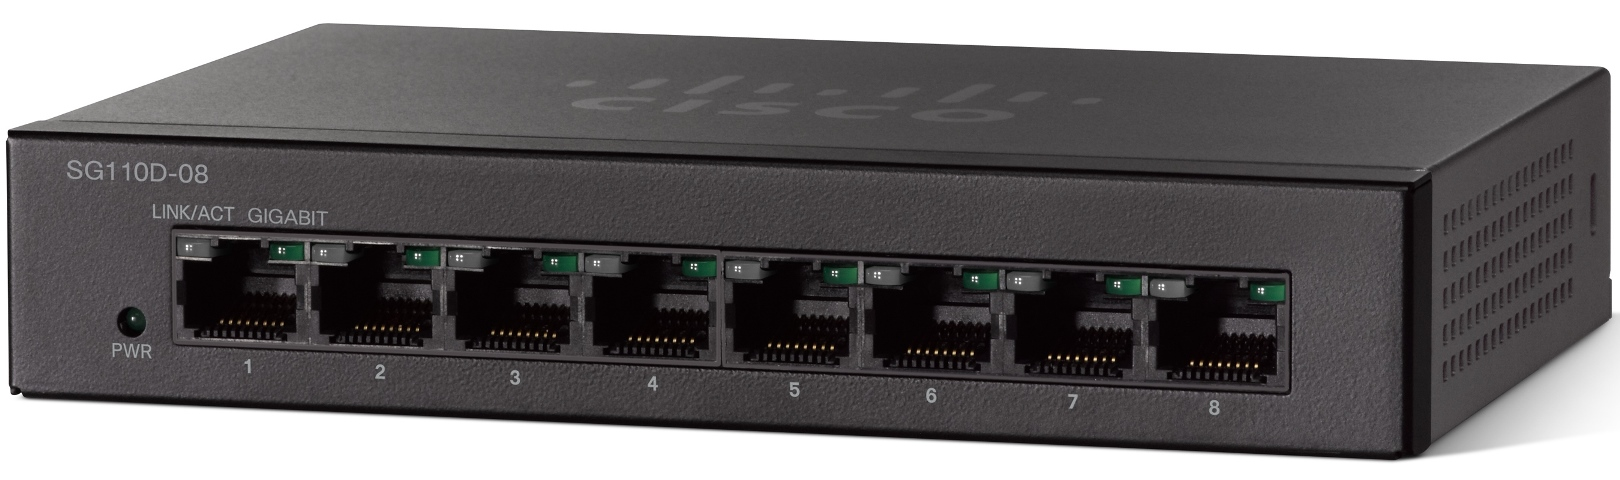 Cisco SG110D-08 8-Port Gigabit Desktop Switch